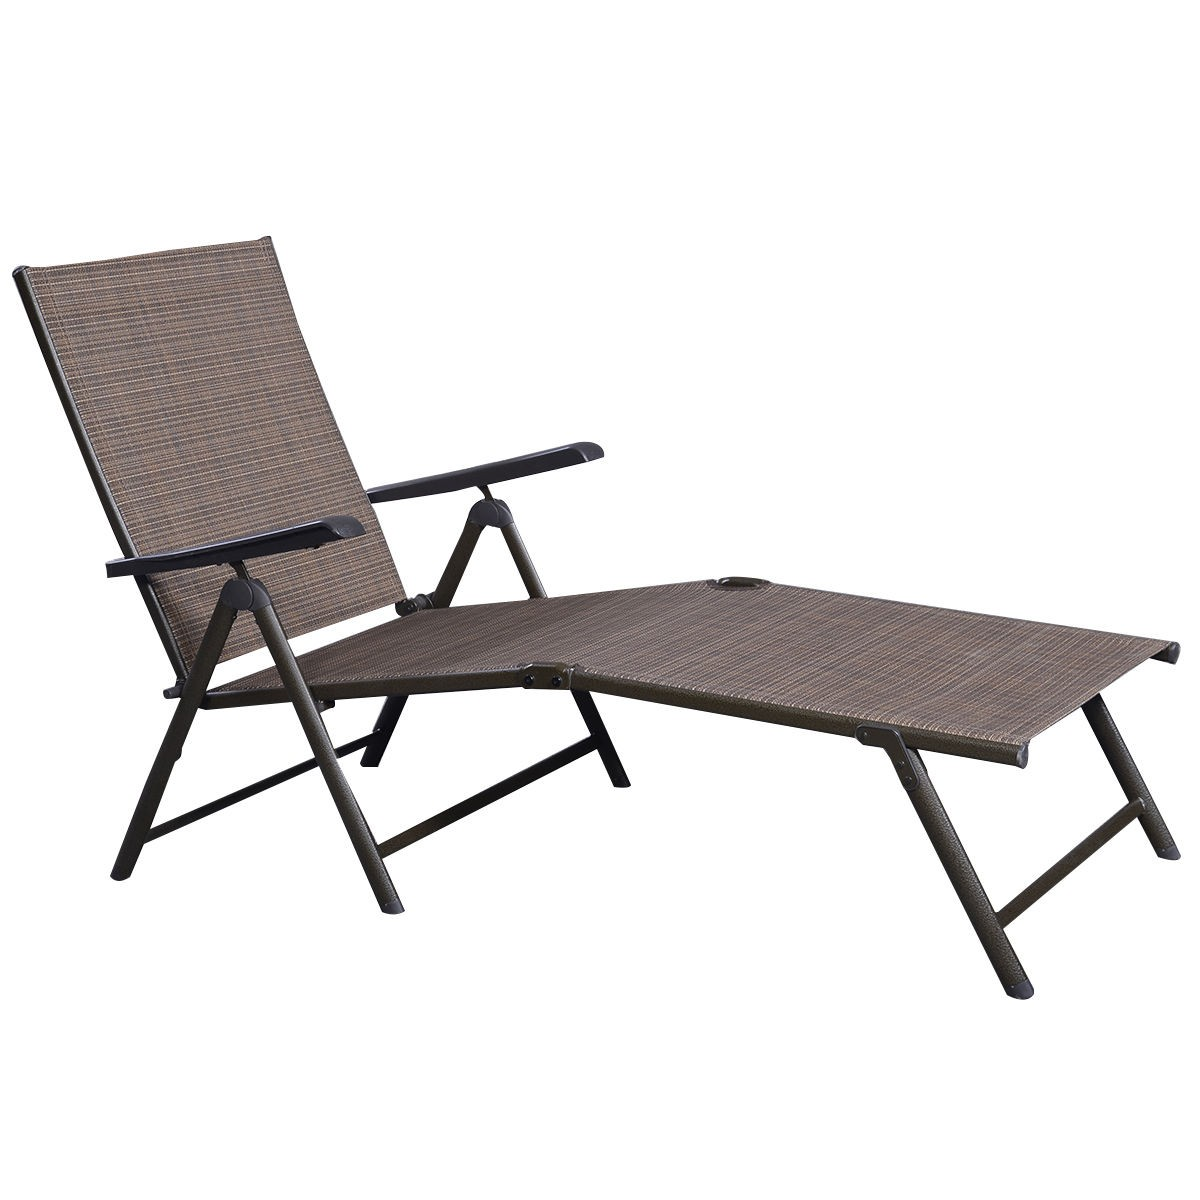 Patio Furniture Textilene Adjustable Pool Chaise Lounge Chair Recliner Outdoo